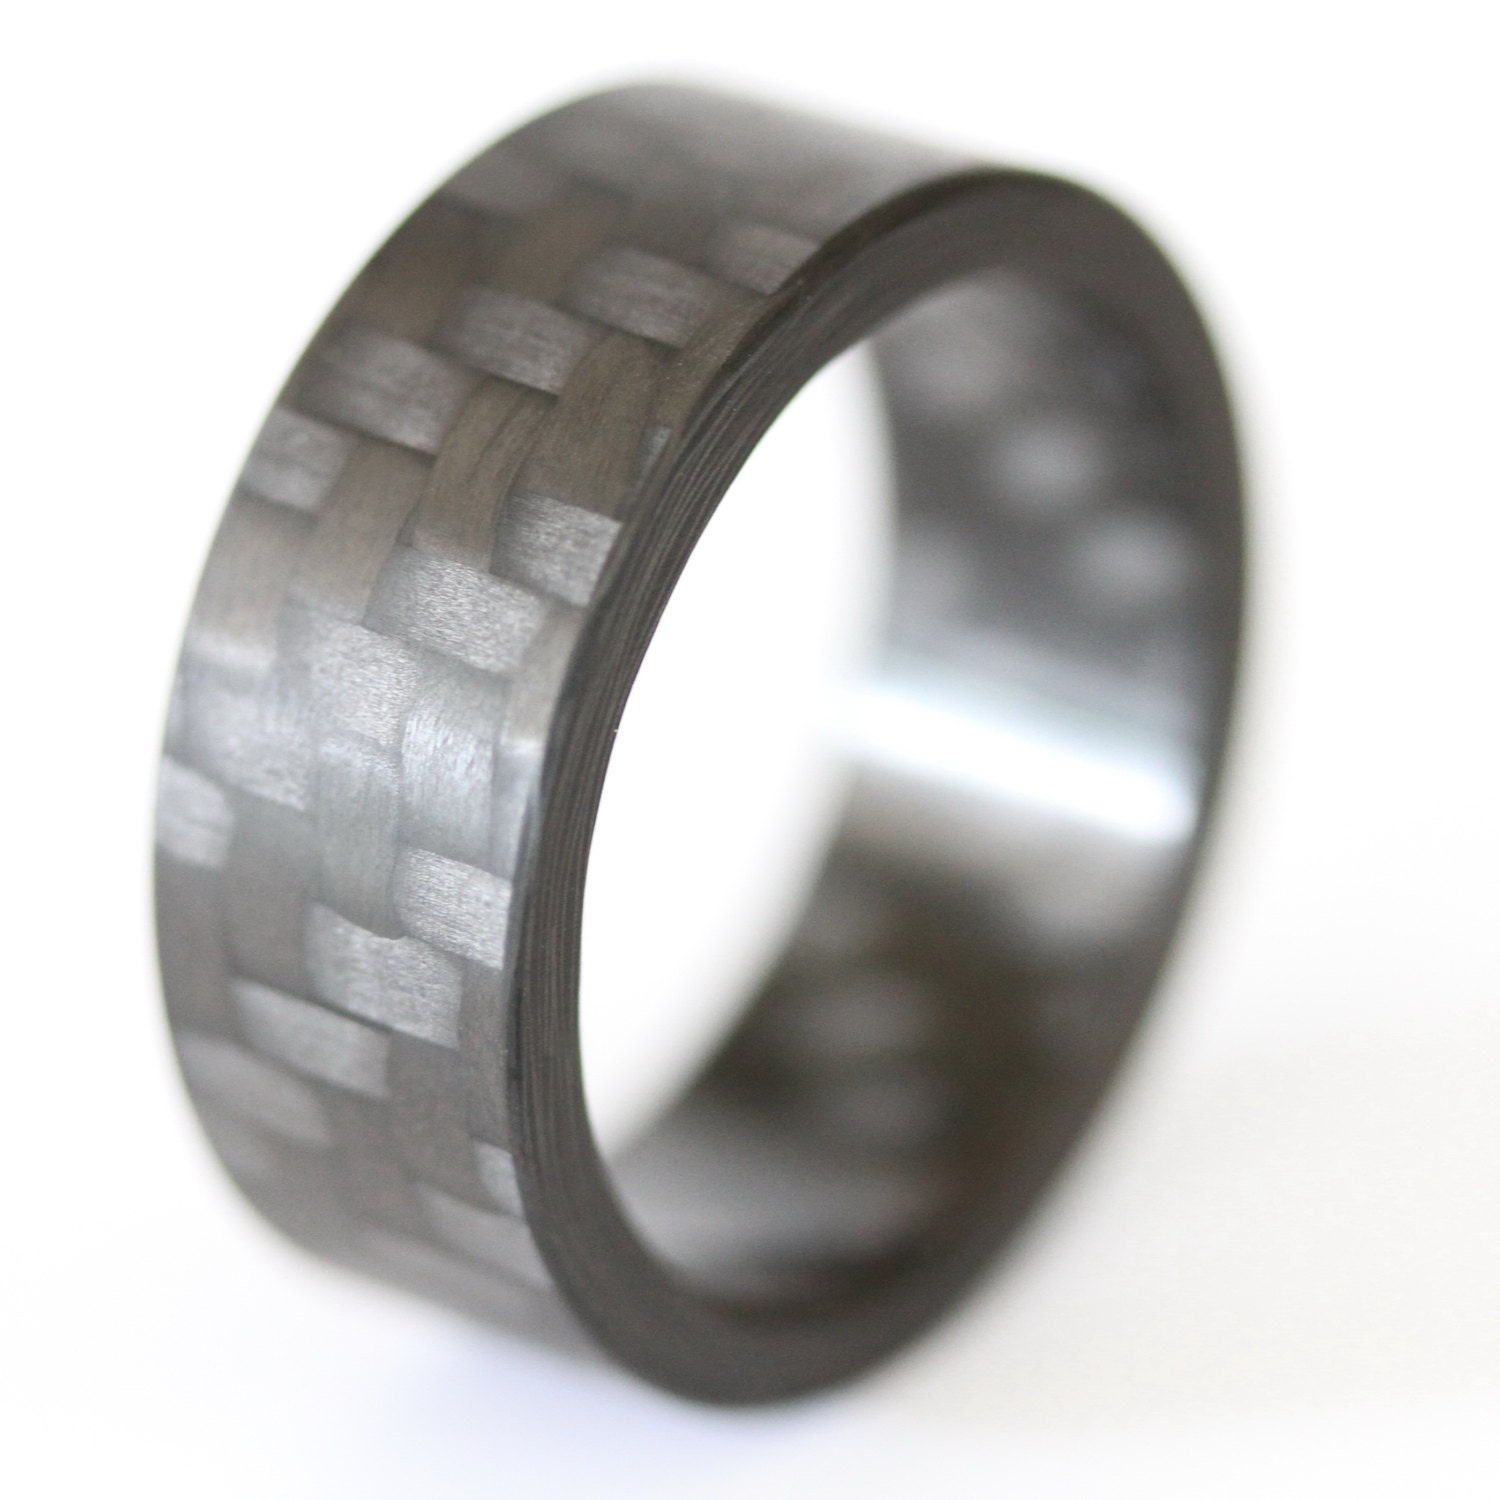 ring band inlay rings gray men fiber high com carbon wedding dp w fit s comfort engagement polish cobalt amazon